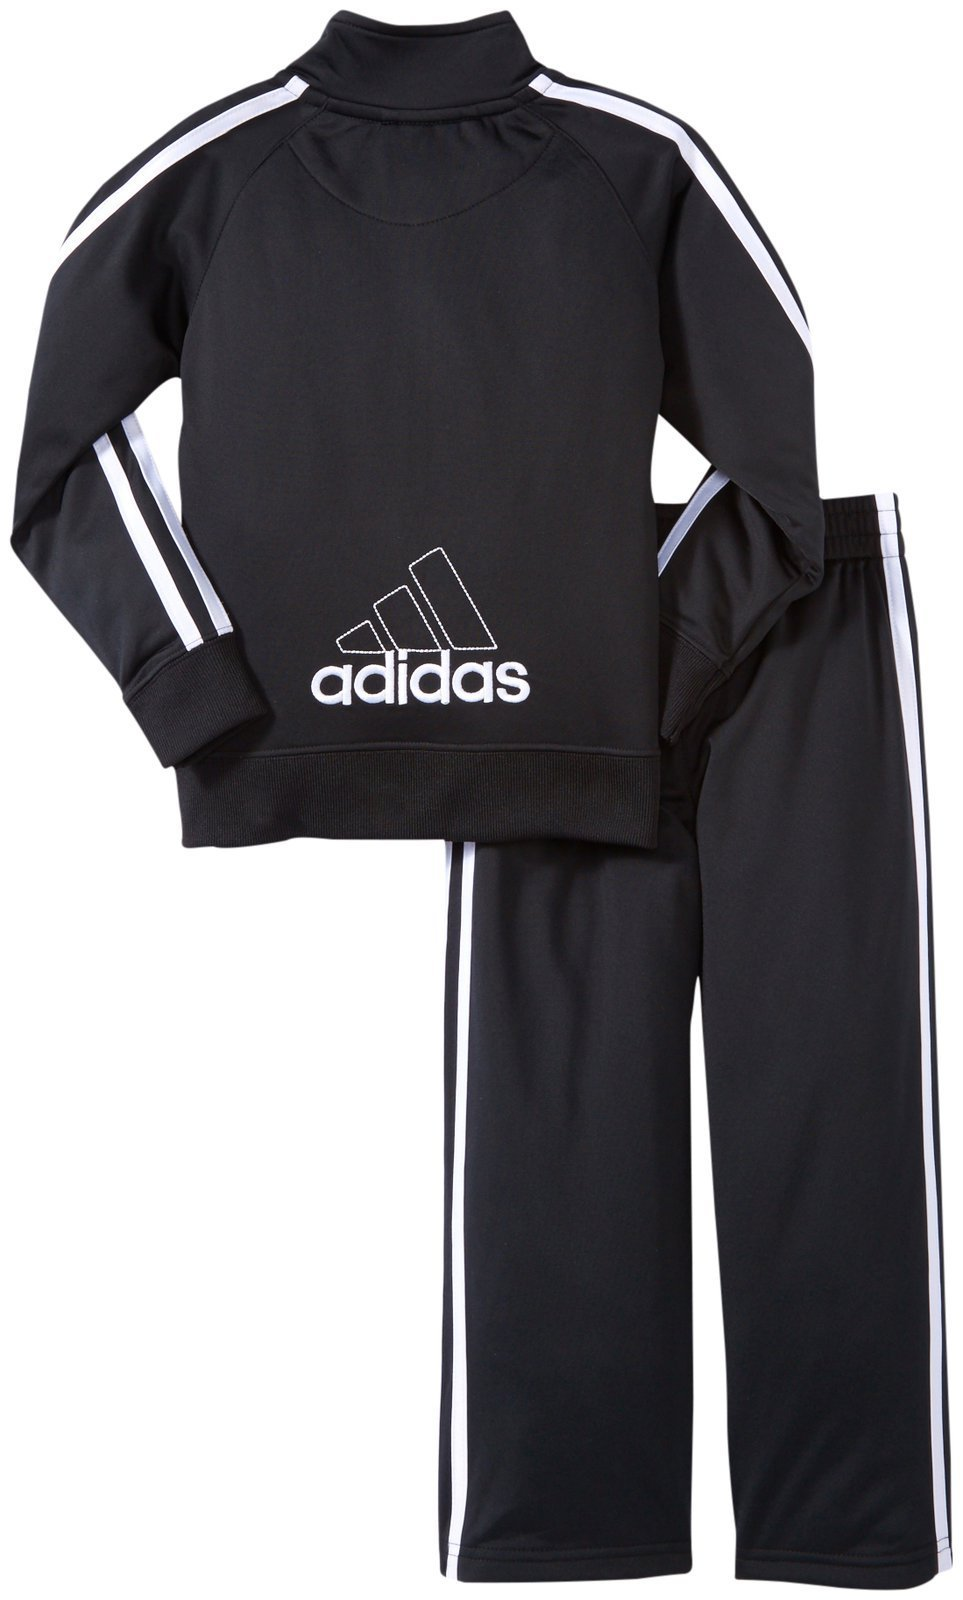 adidas Little Boys' Core Tricot Set,Black,3T by adidas